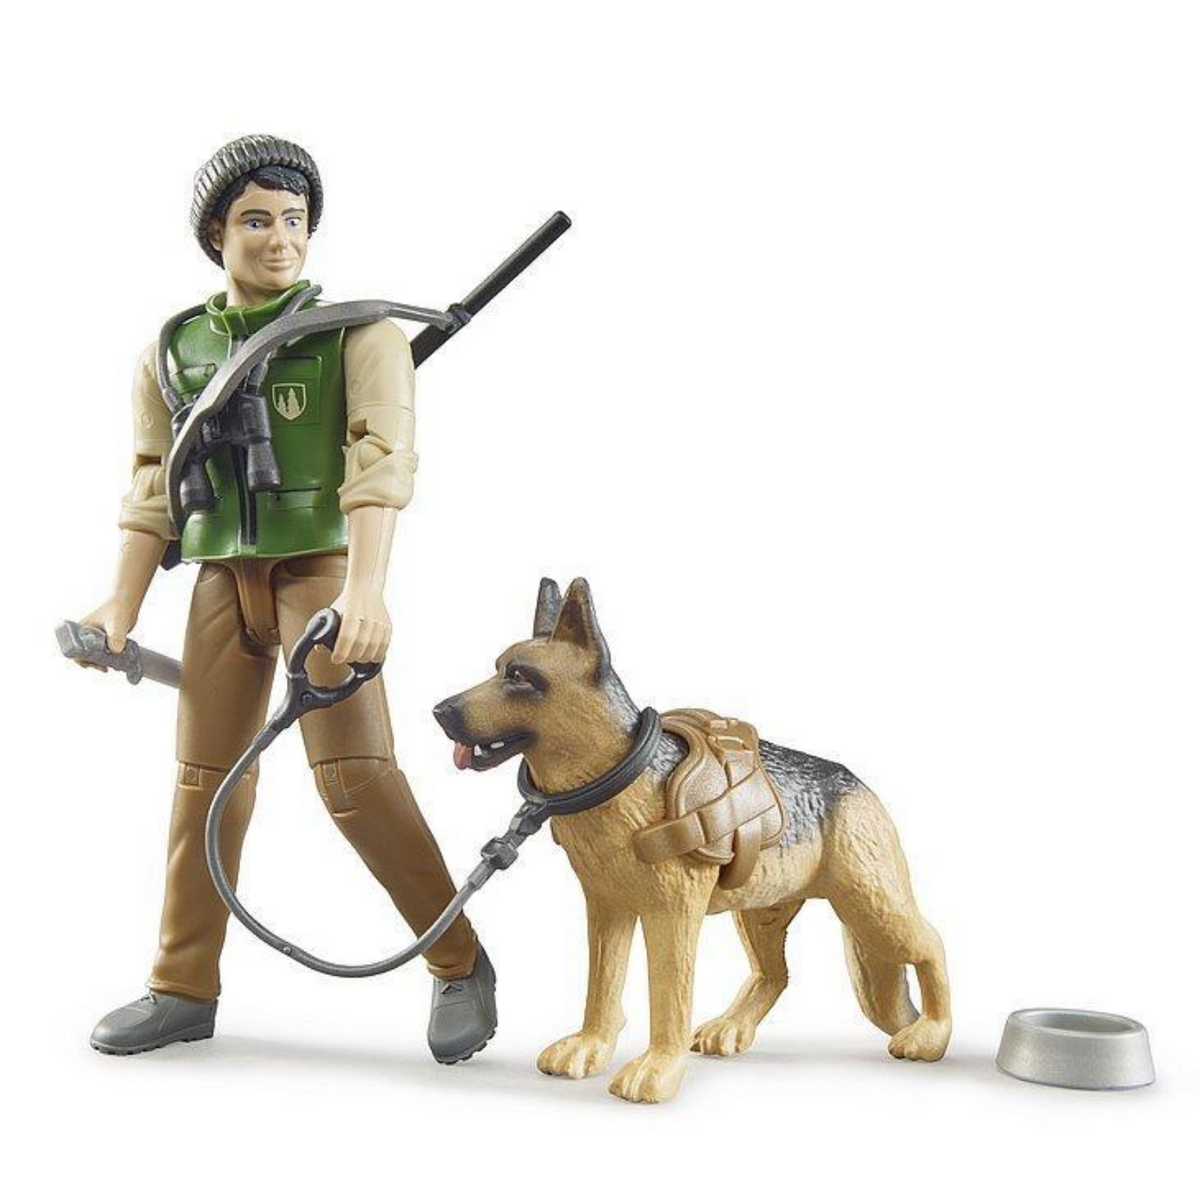 Bruder Forest Ranger, Dog & Equipment